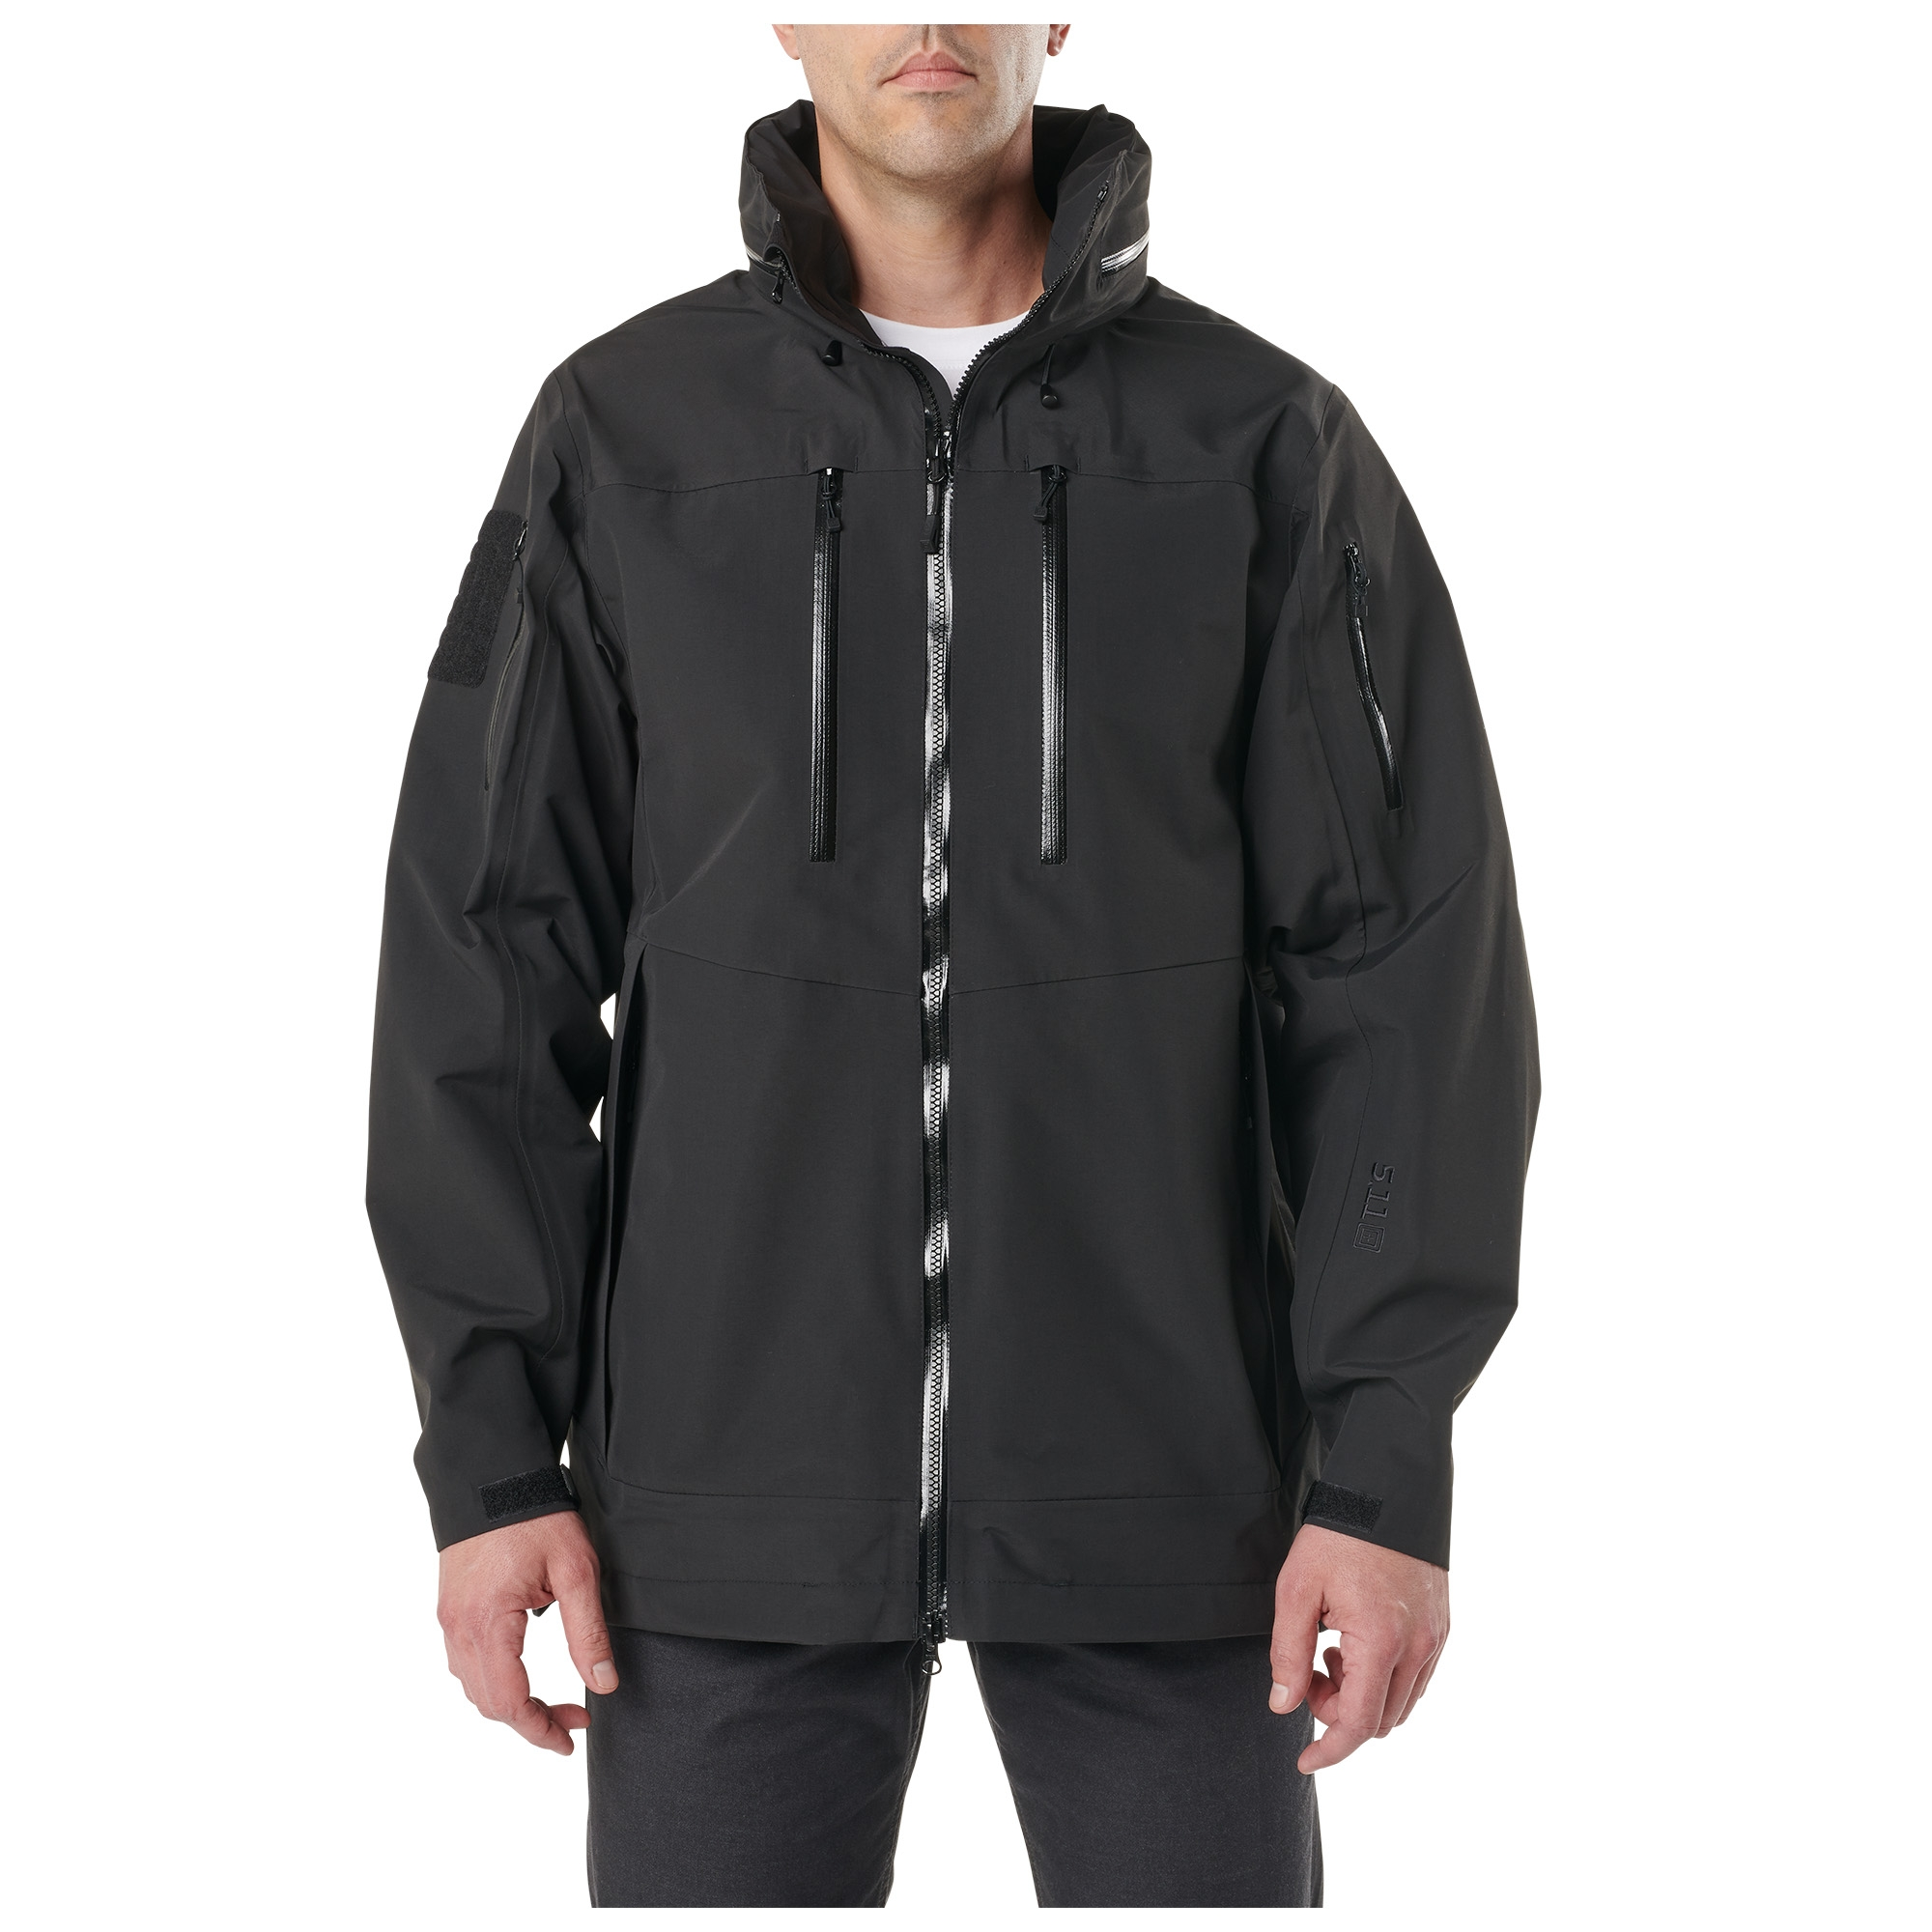 5.11 Tactical Men's Approach Jacket (Green) thumbnail